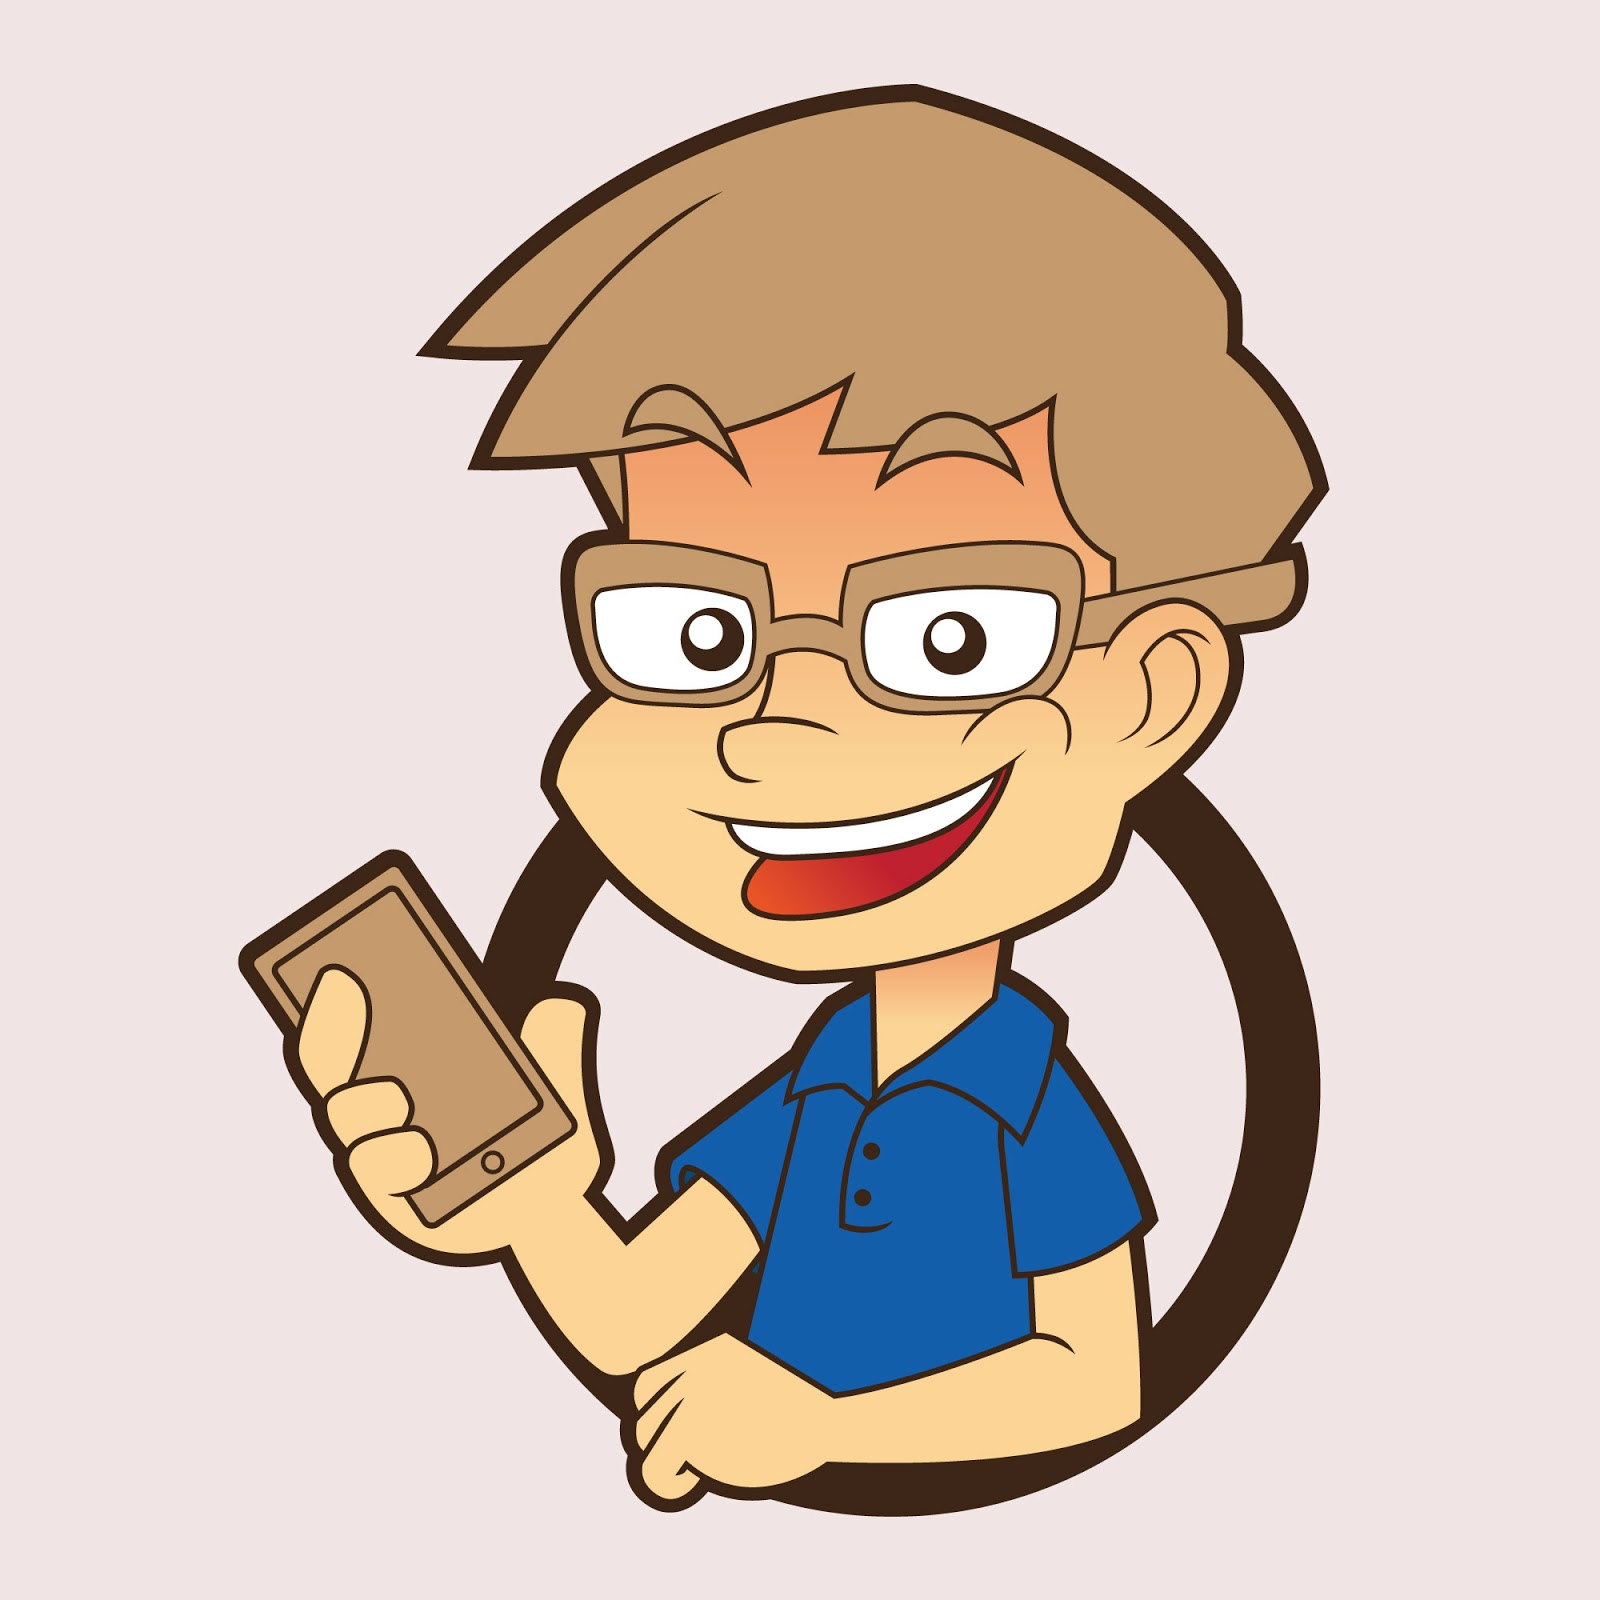 Mobile Expert Illustration Free Download Vector CDR, AI, EPS and PNG Formats